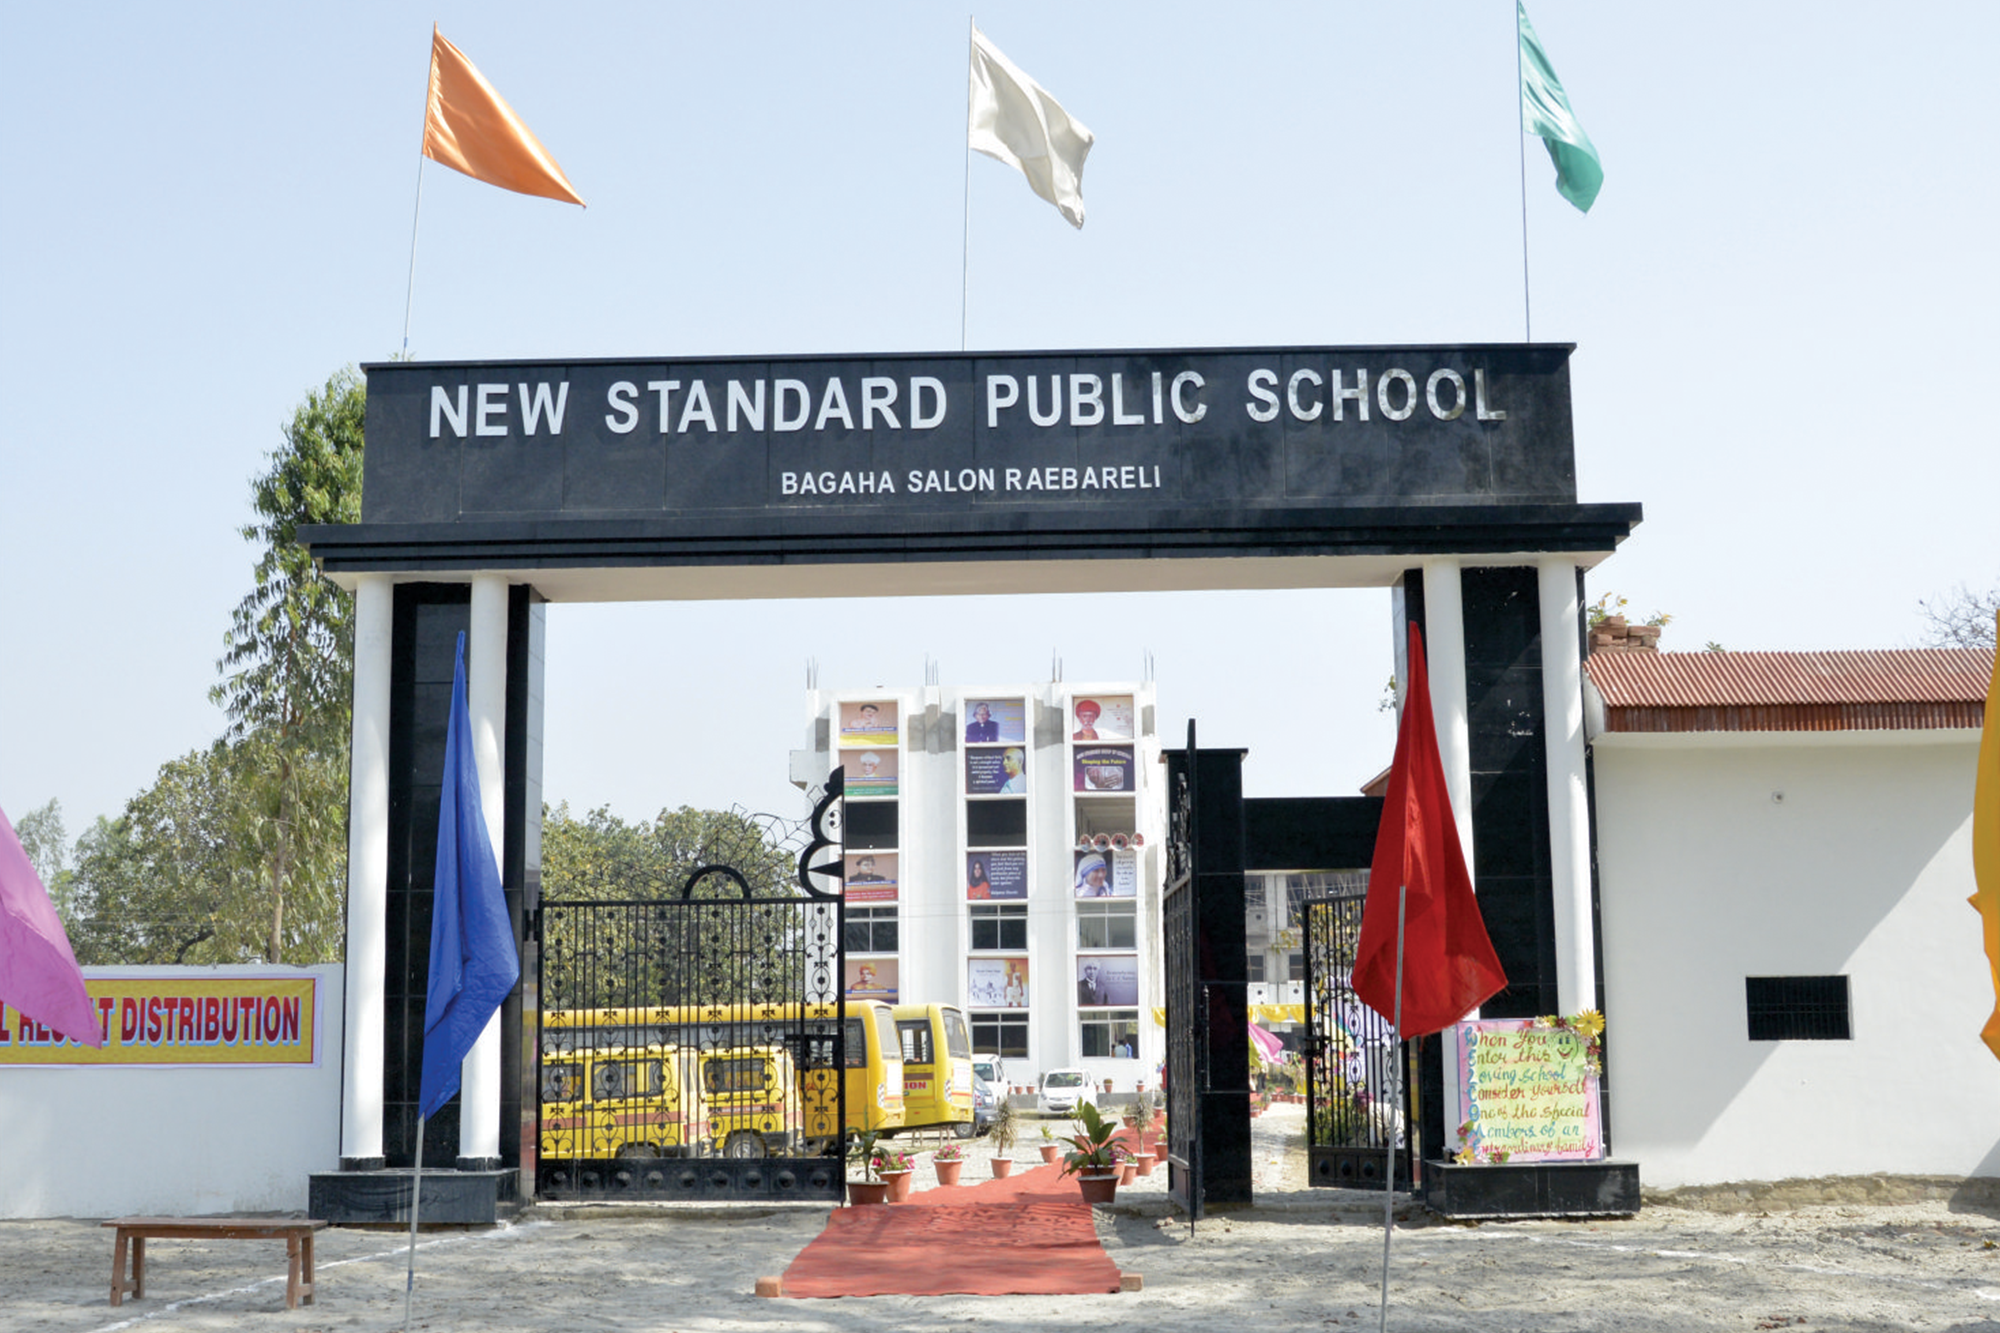 New Standard Public